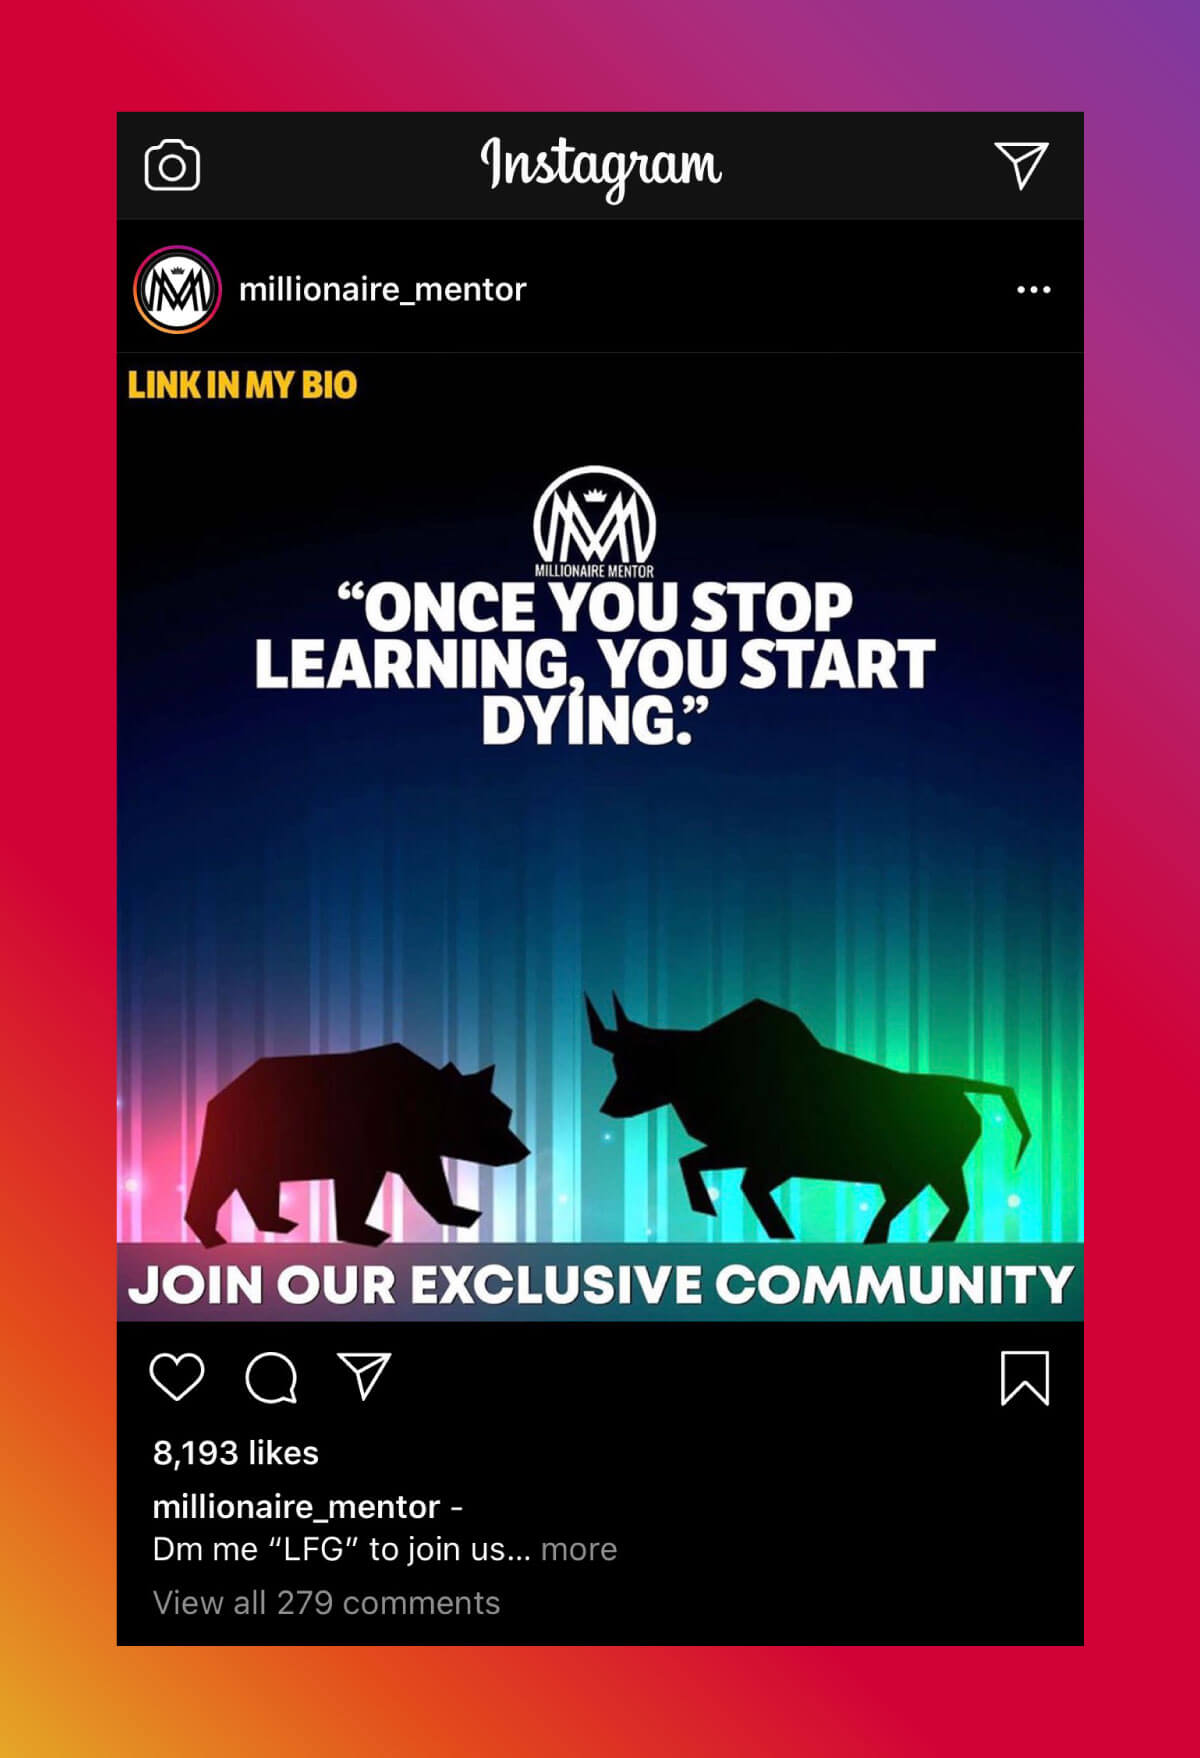 Instagram Marketing Strategy - Post Ideas